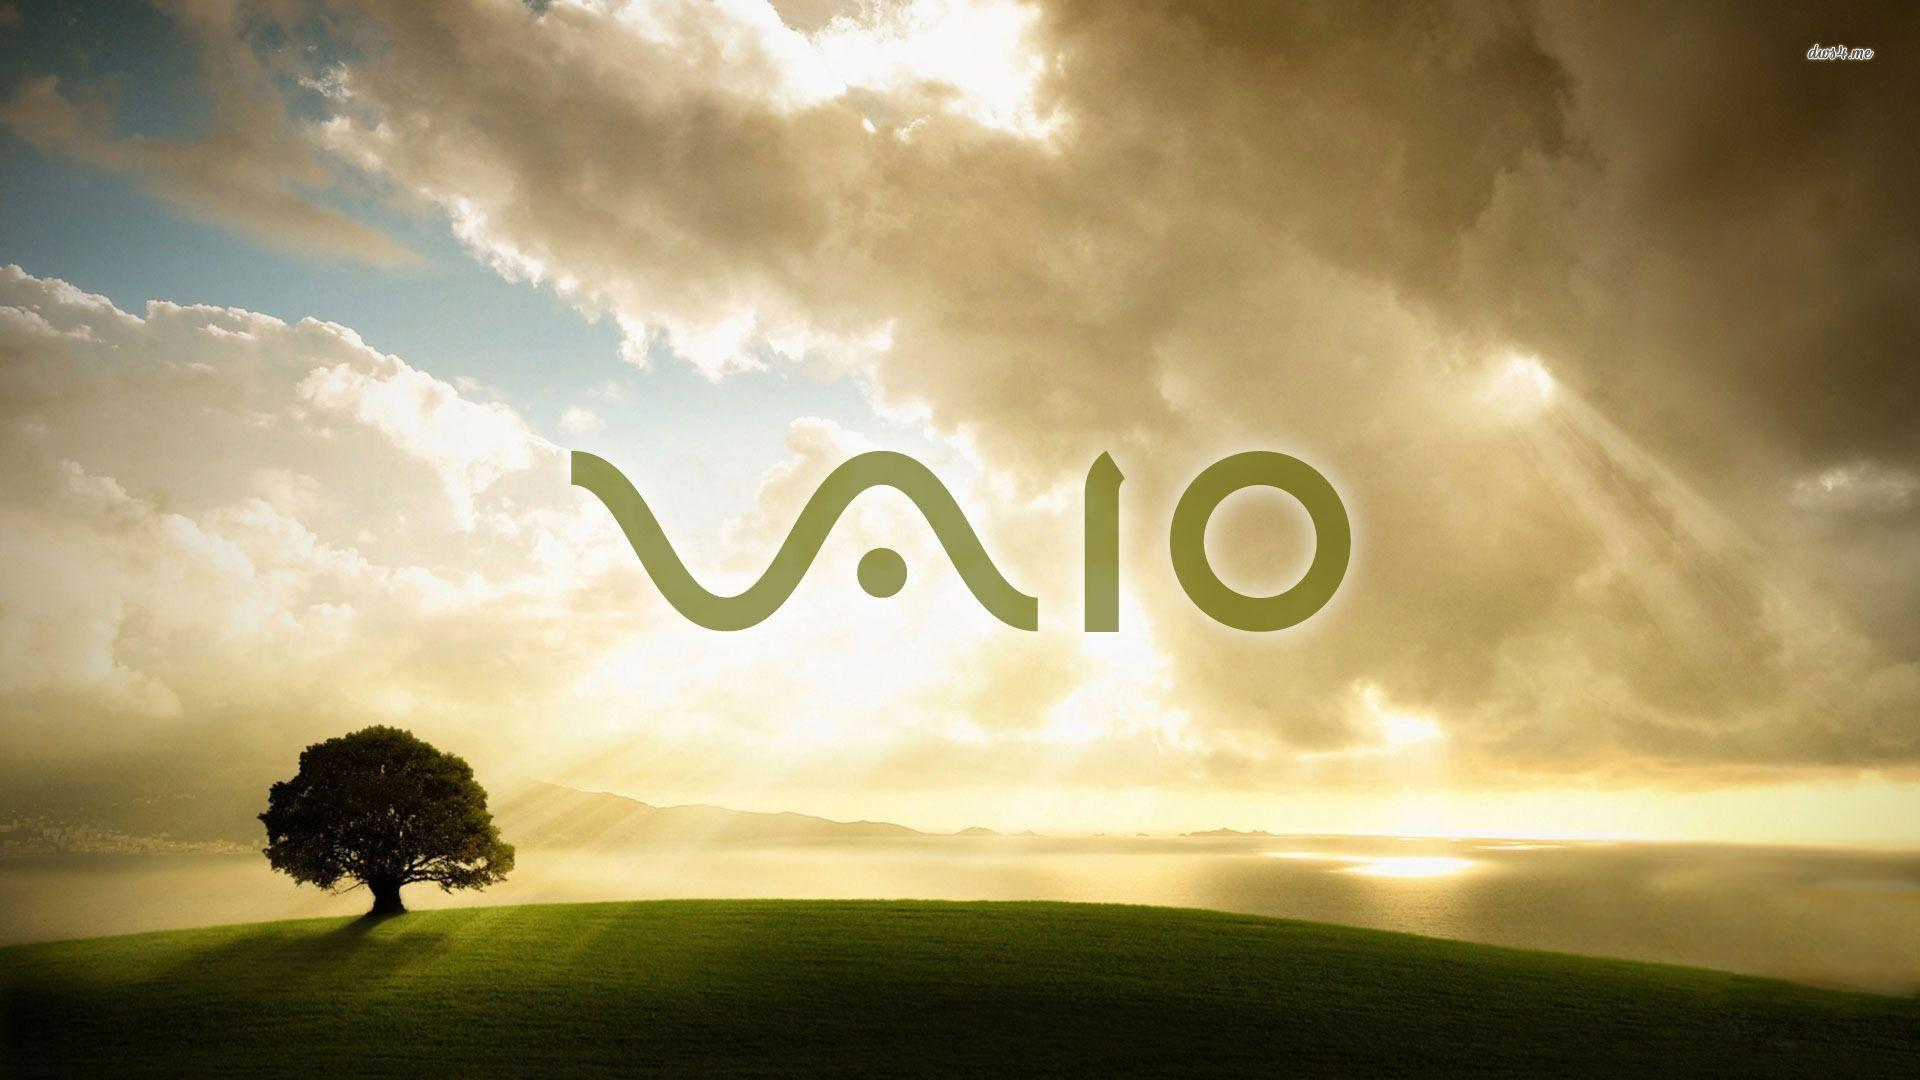 vaio wallpapers wallpaper cave